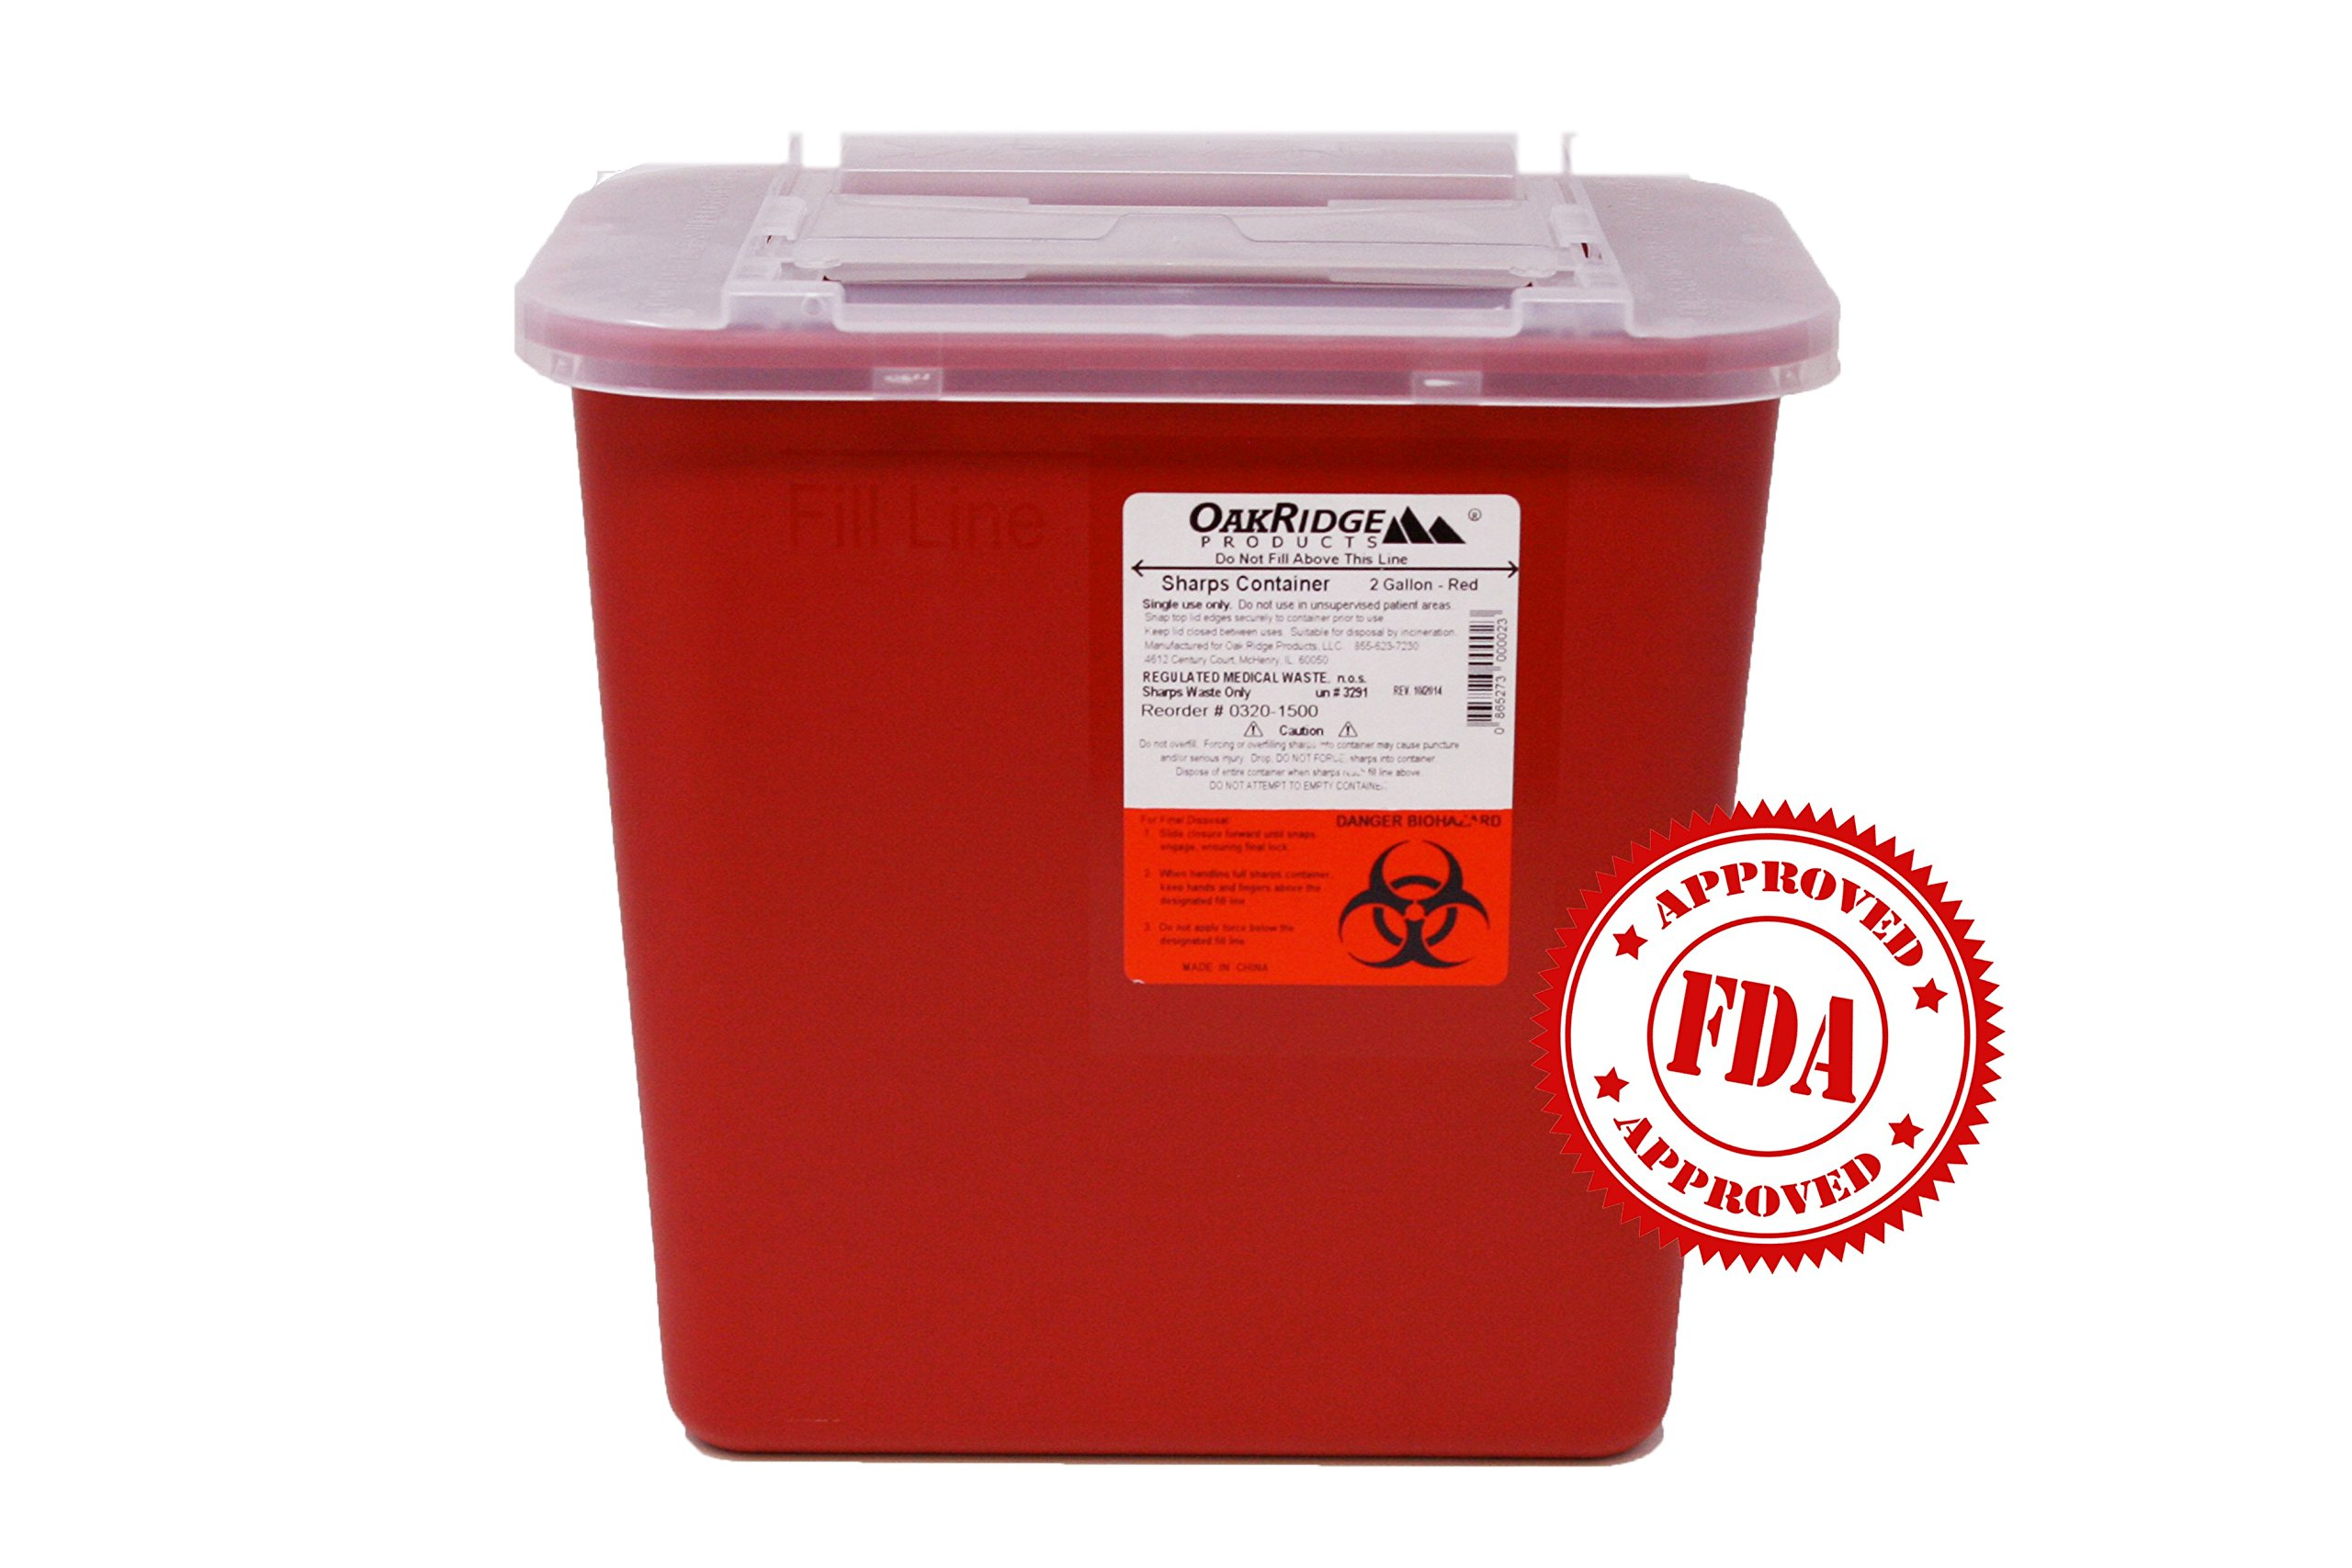 OakRidge Products 2 Gallon Size | Sharps Disposal Container | Holds Hundreds of Needles by OakRidge Products